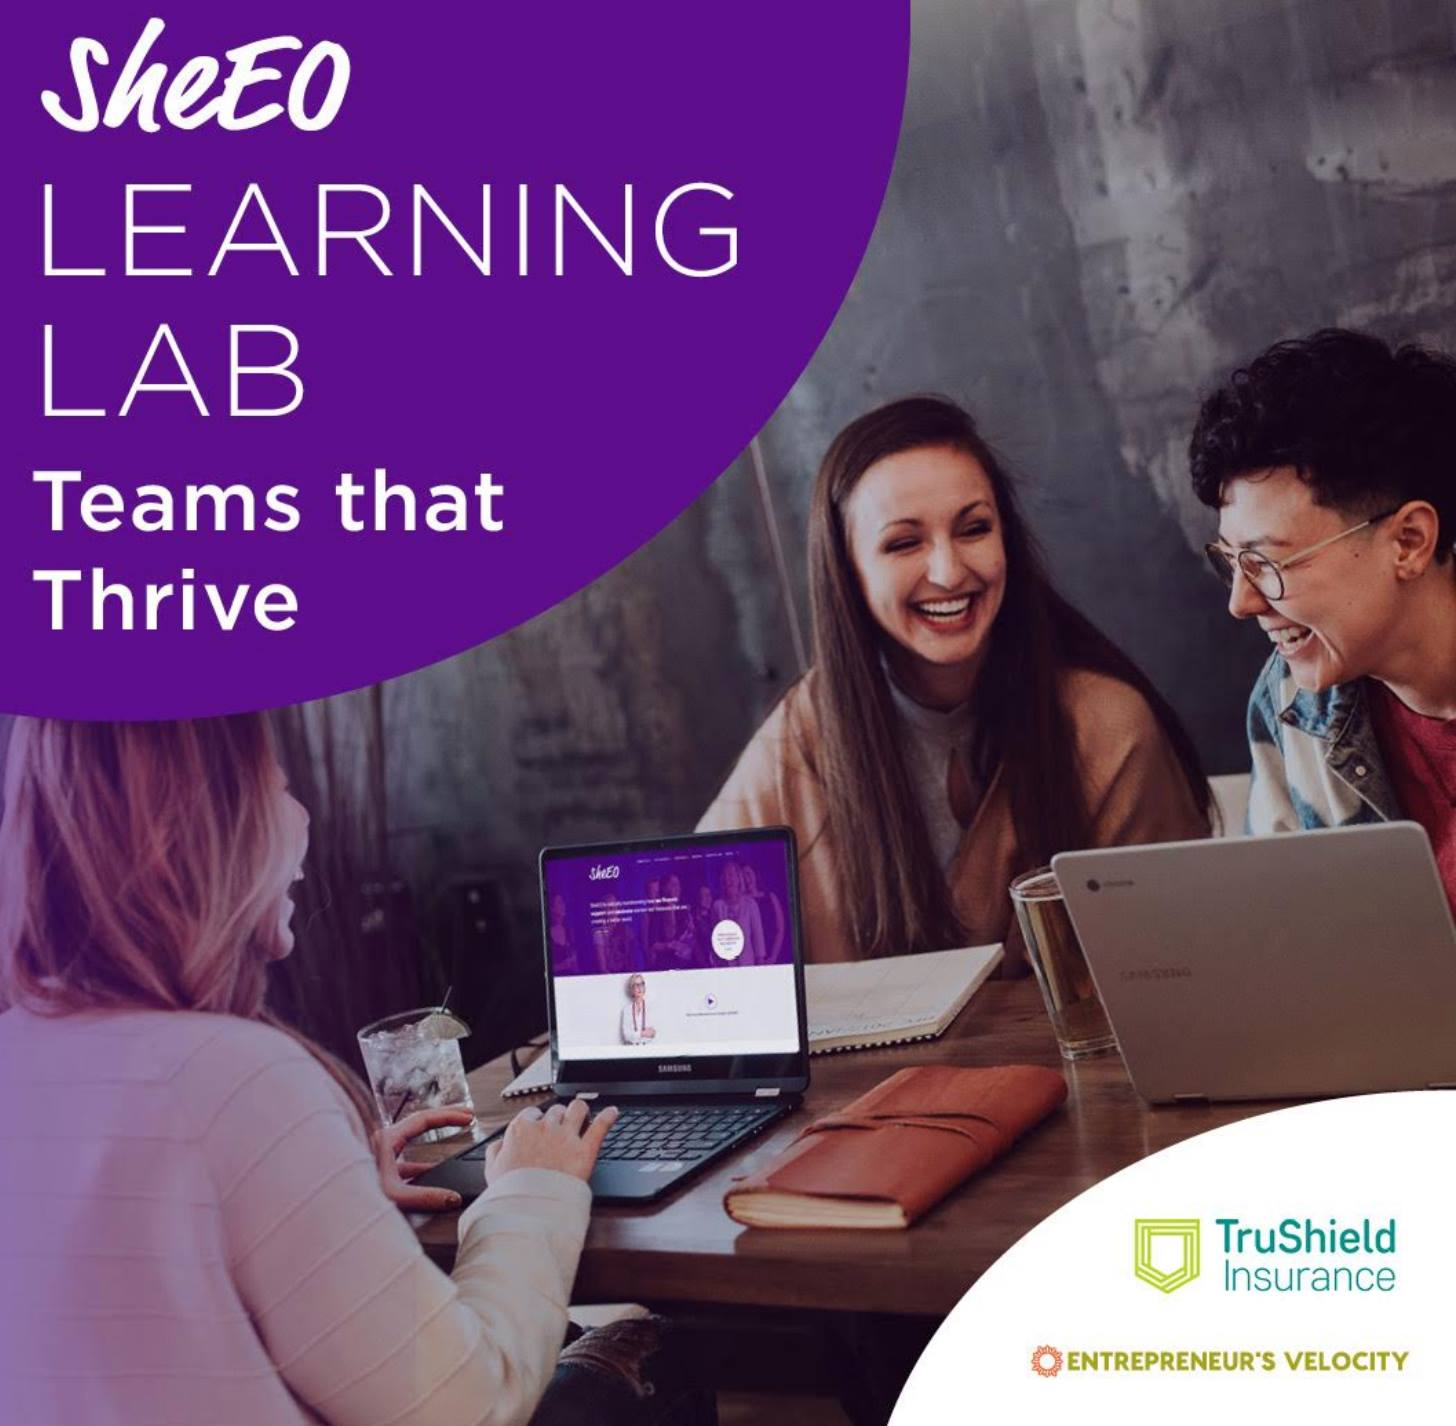 learninglab-sheeo.jpg